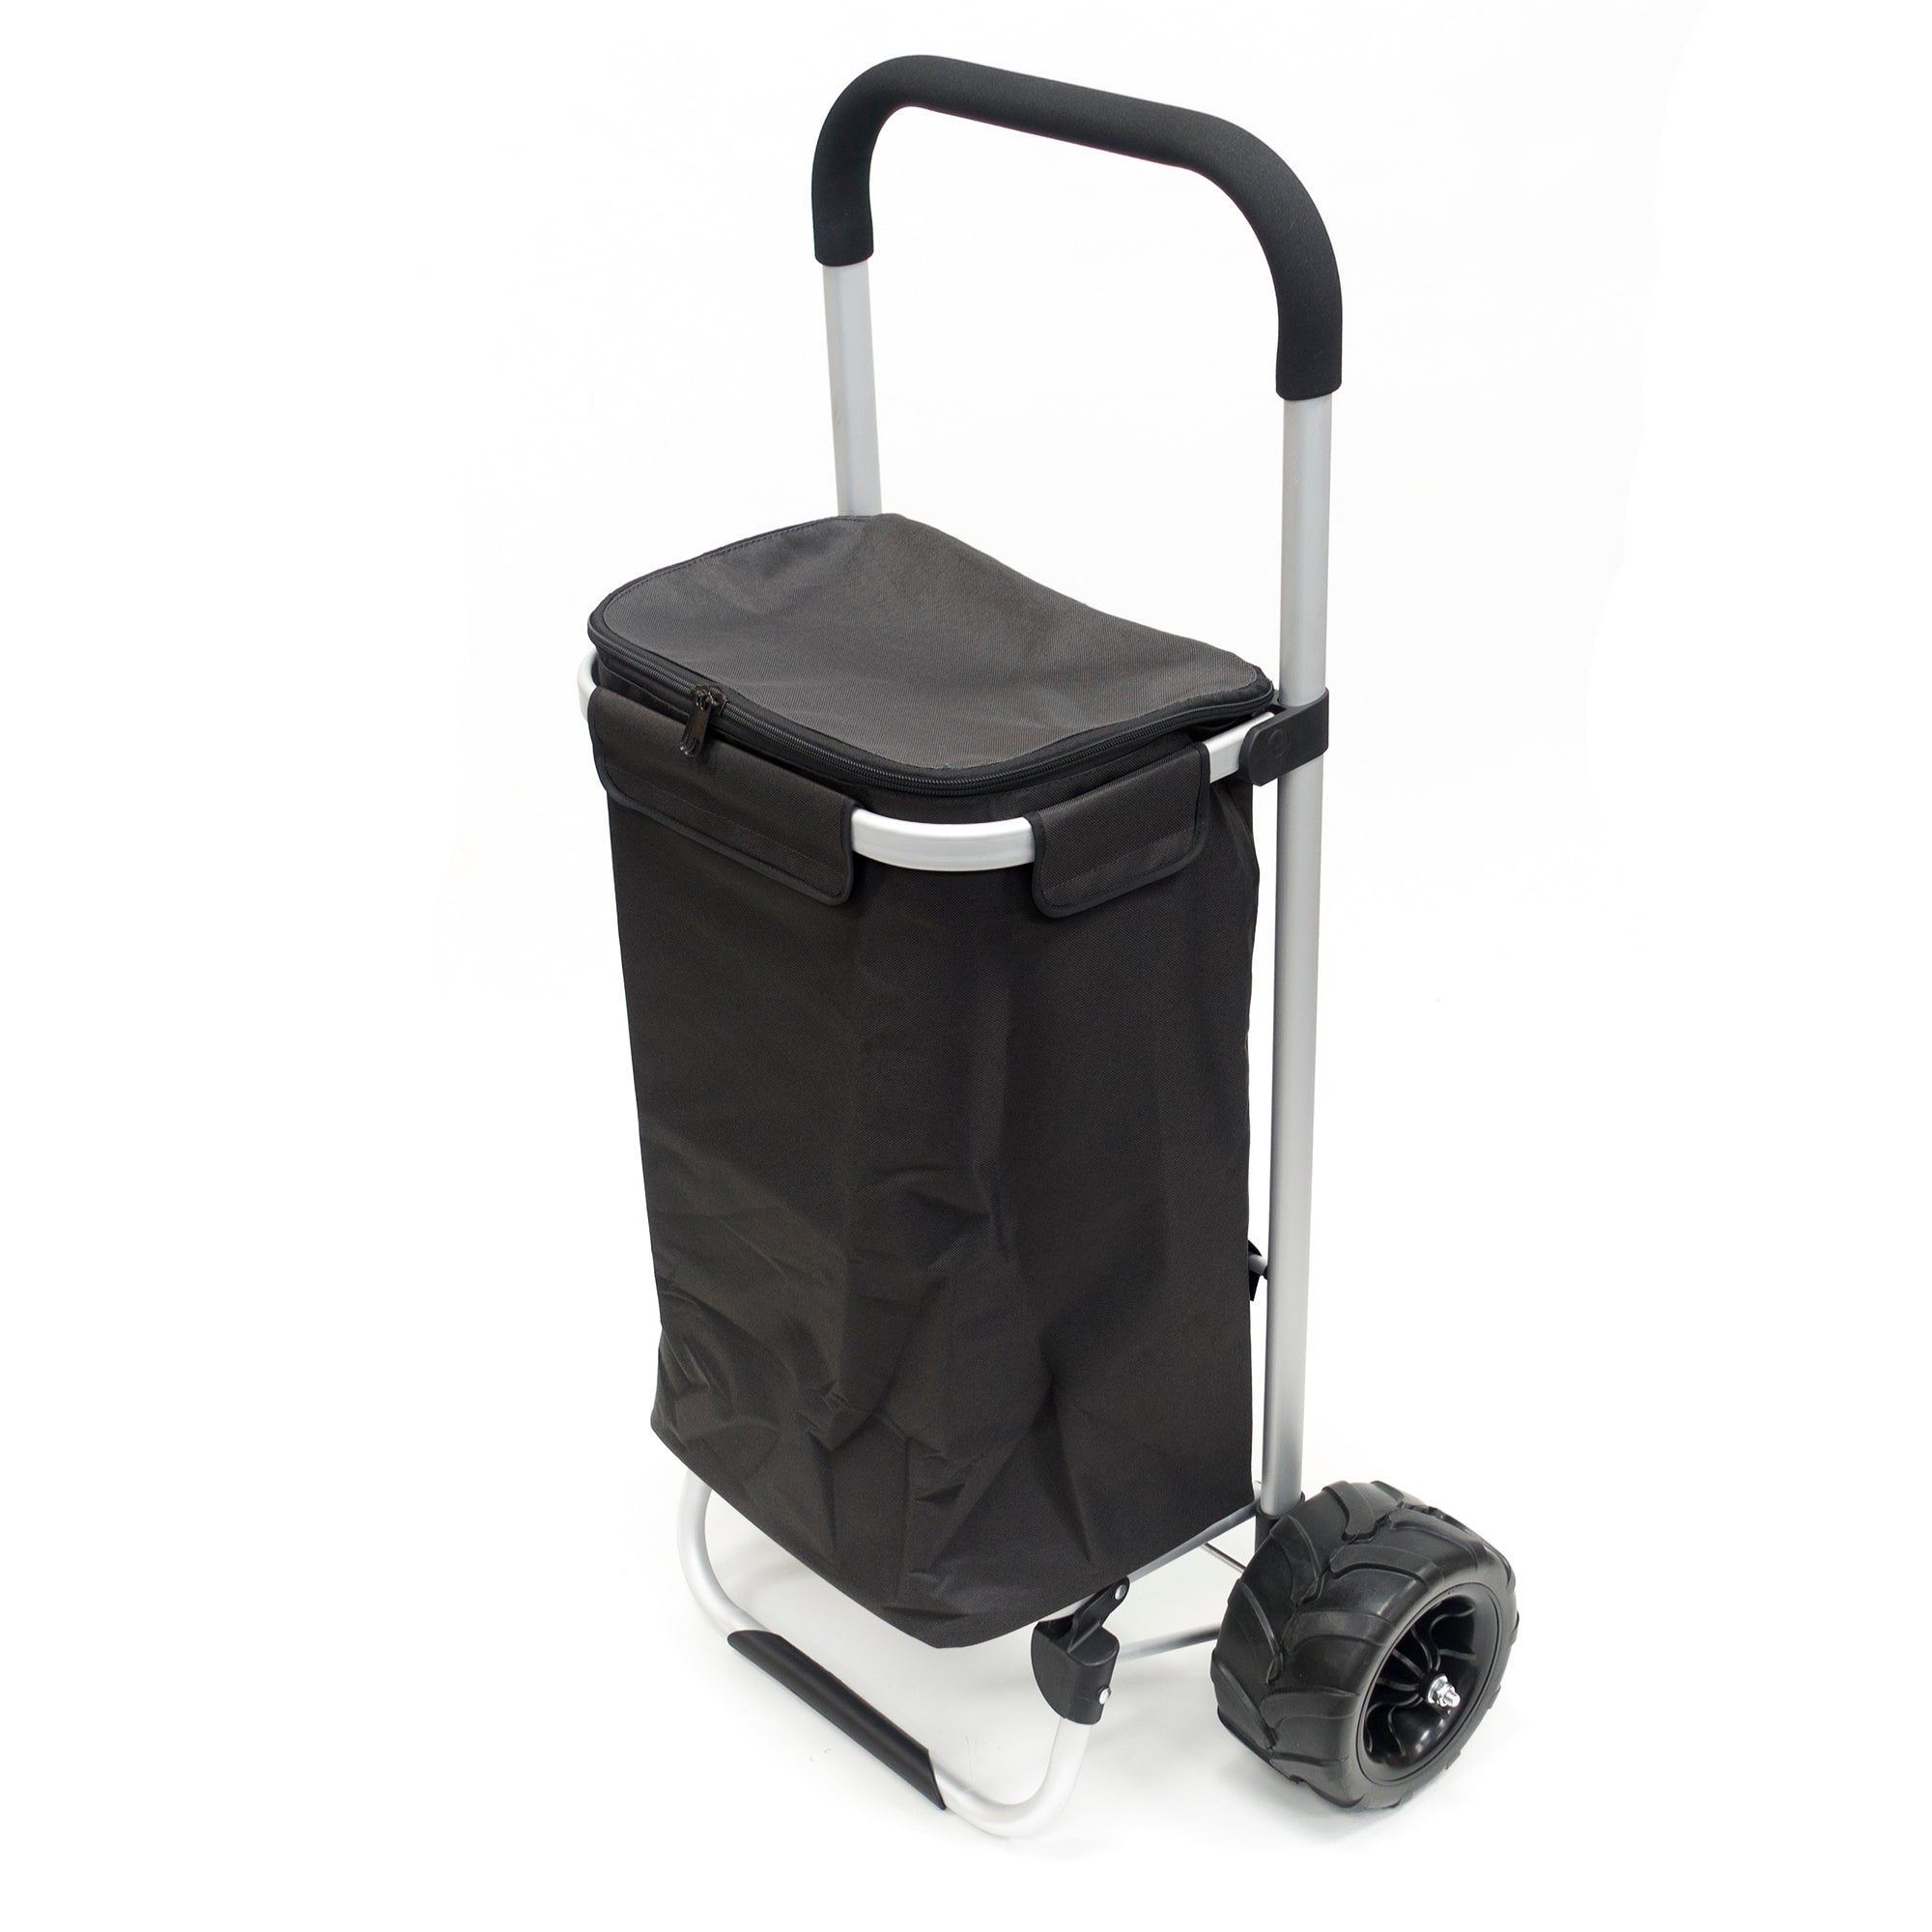 All-Terrain Folding Aluminum Trolley with Removable Zip-Top Bag Black 890200